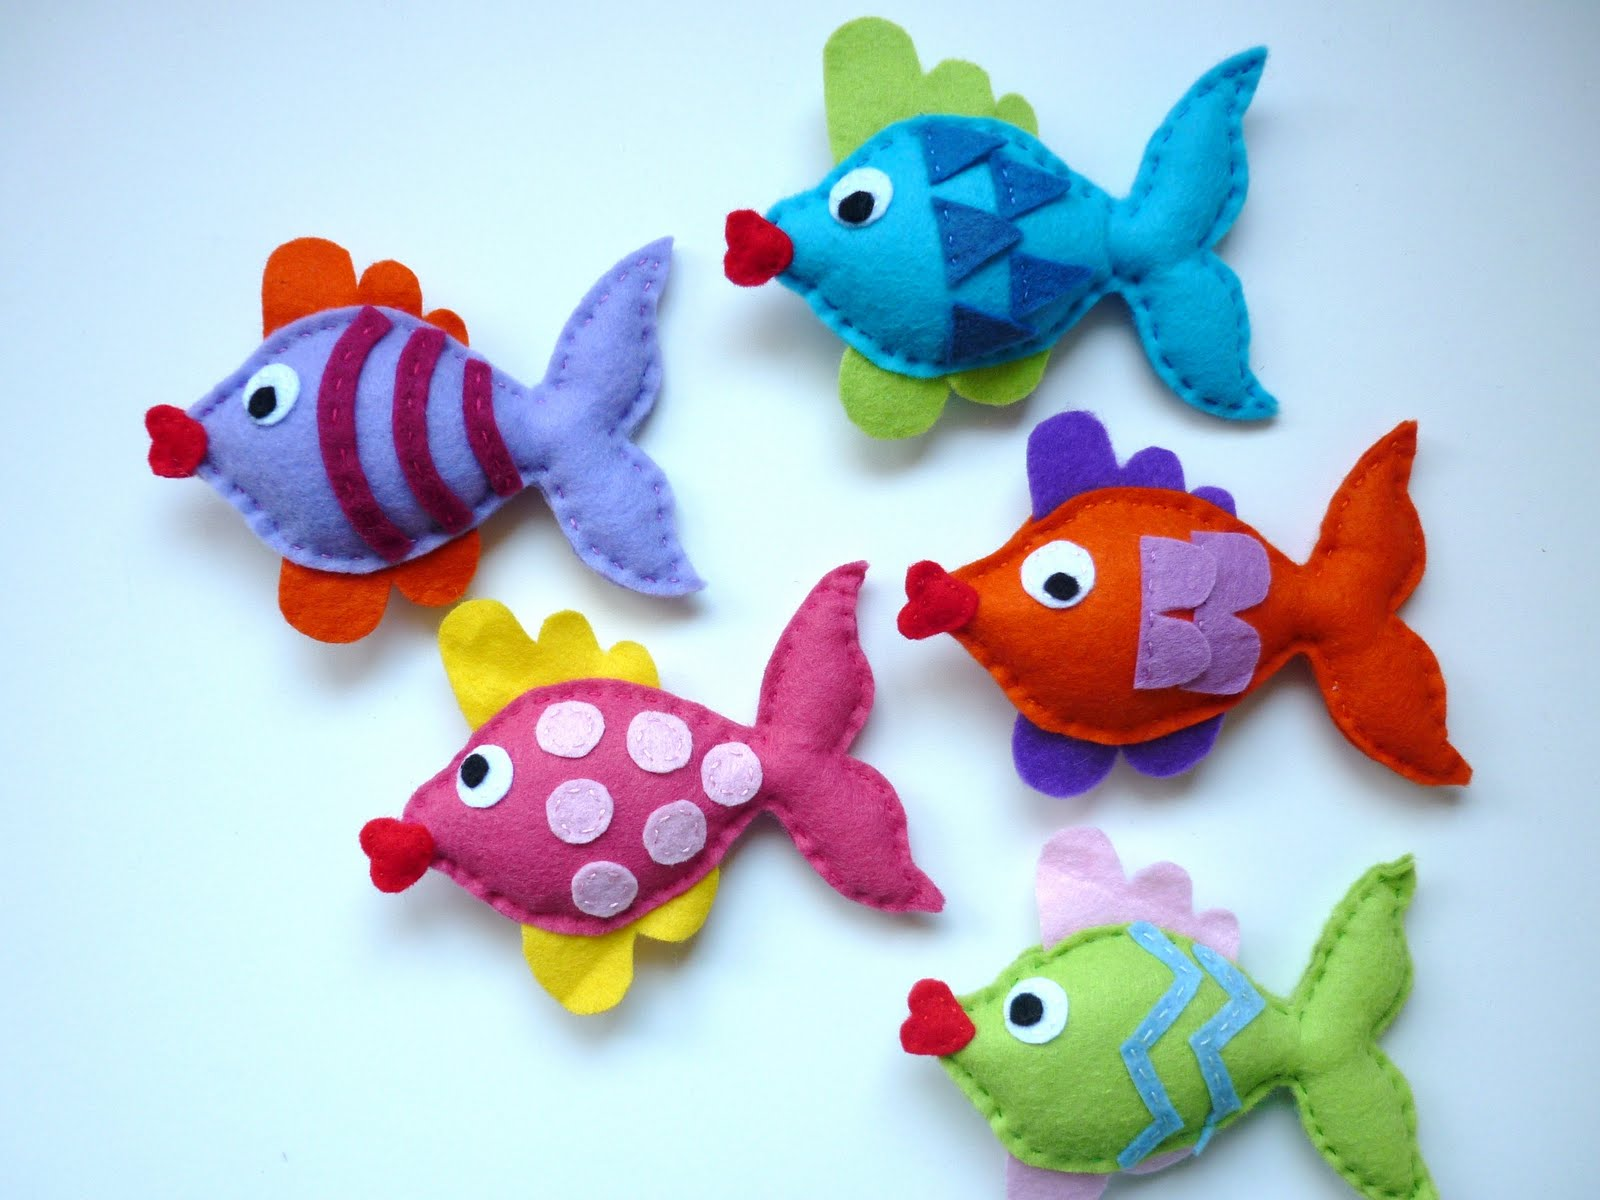 Towel Clips For Beach Chairs The Colorful White: Colorful Fish Craft